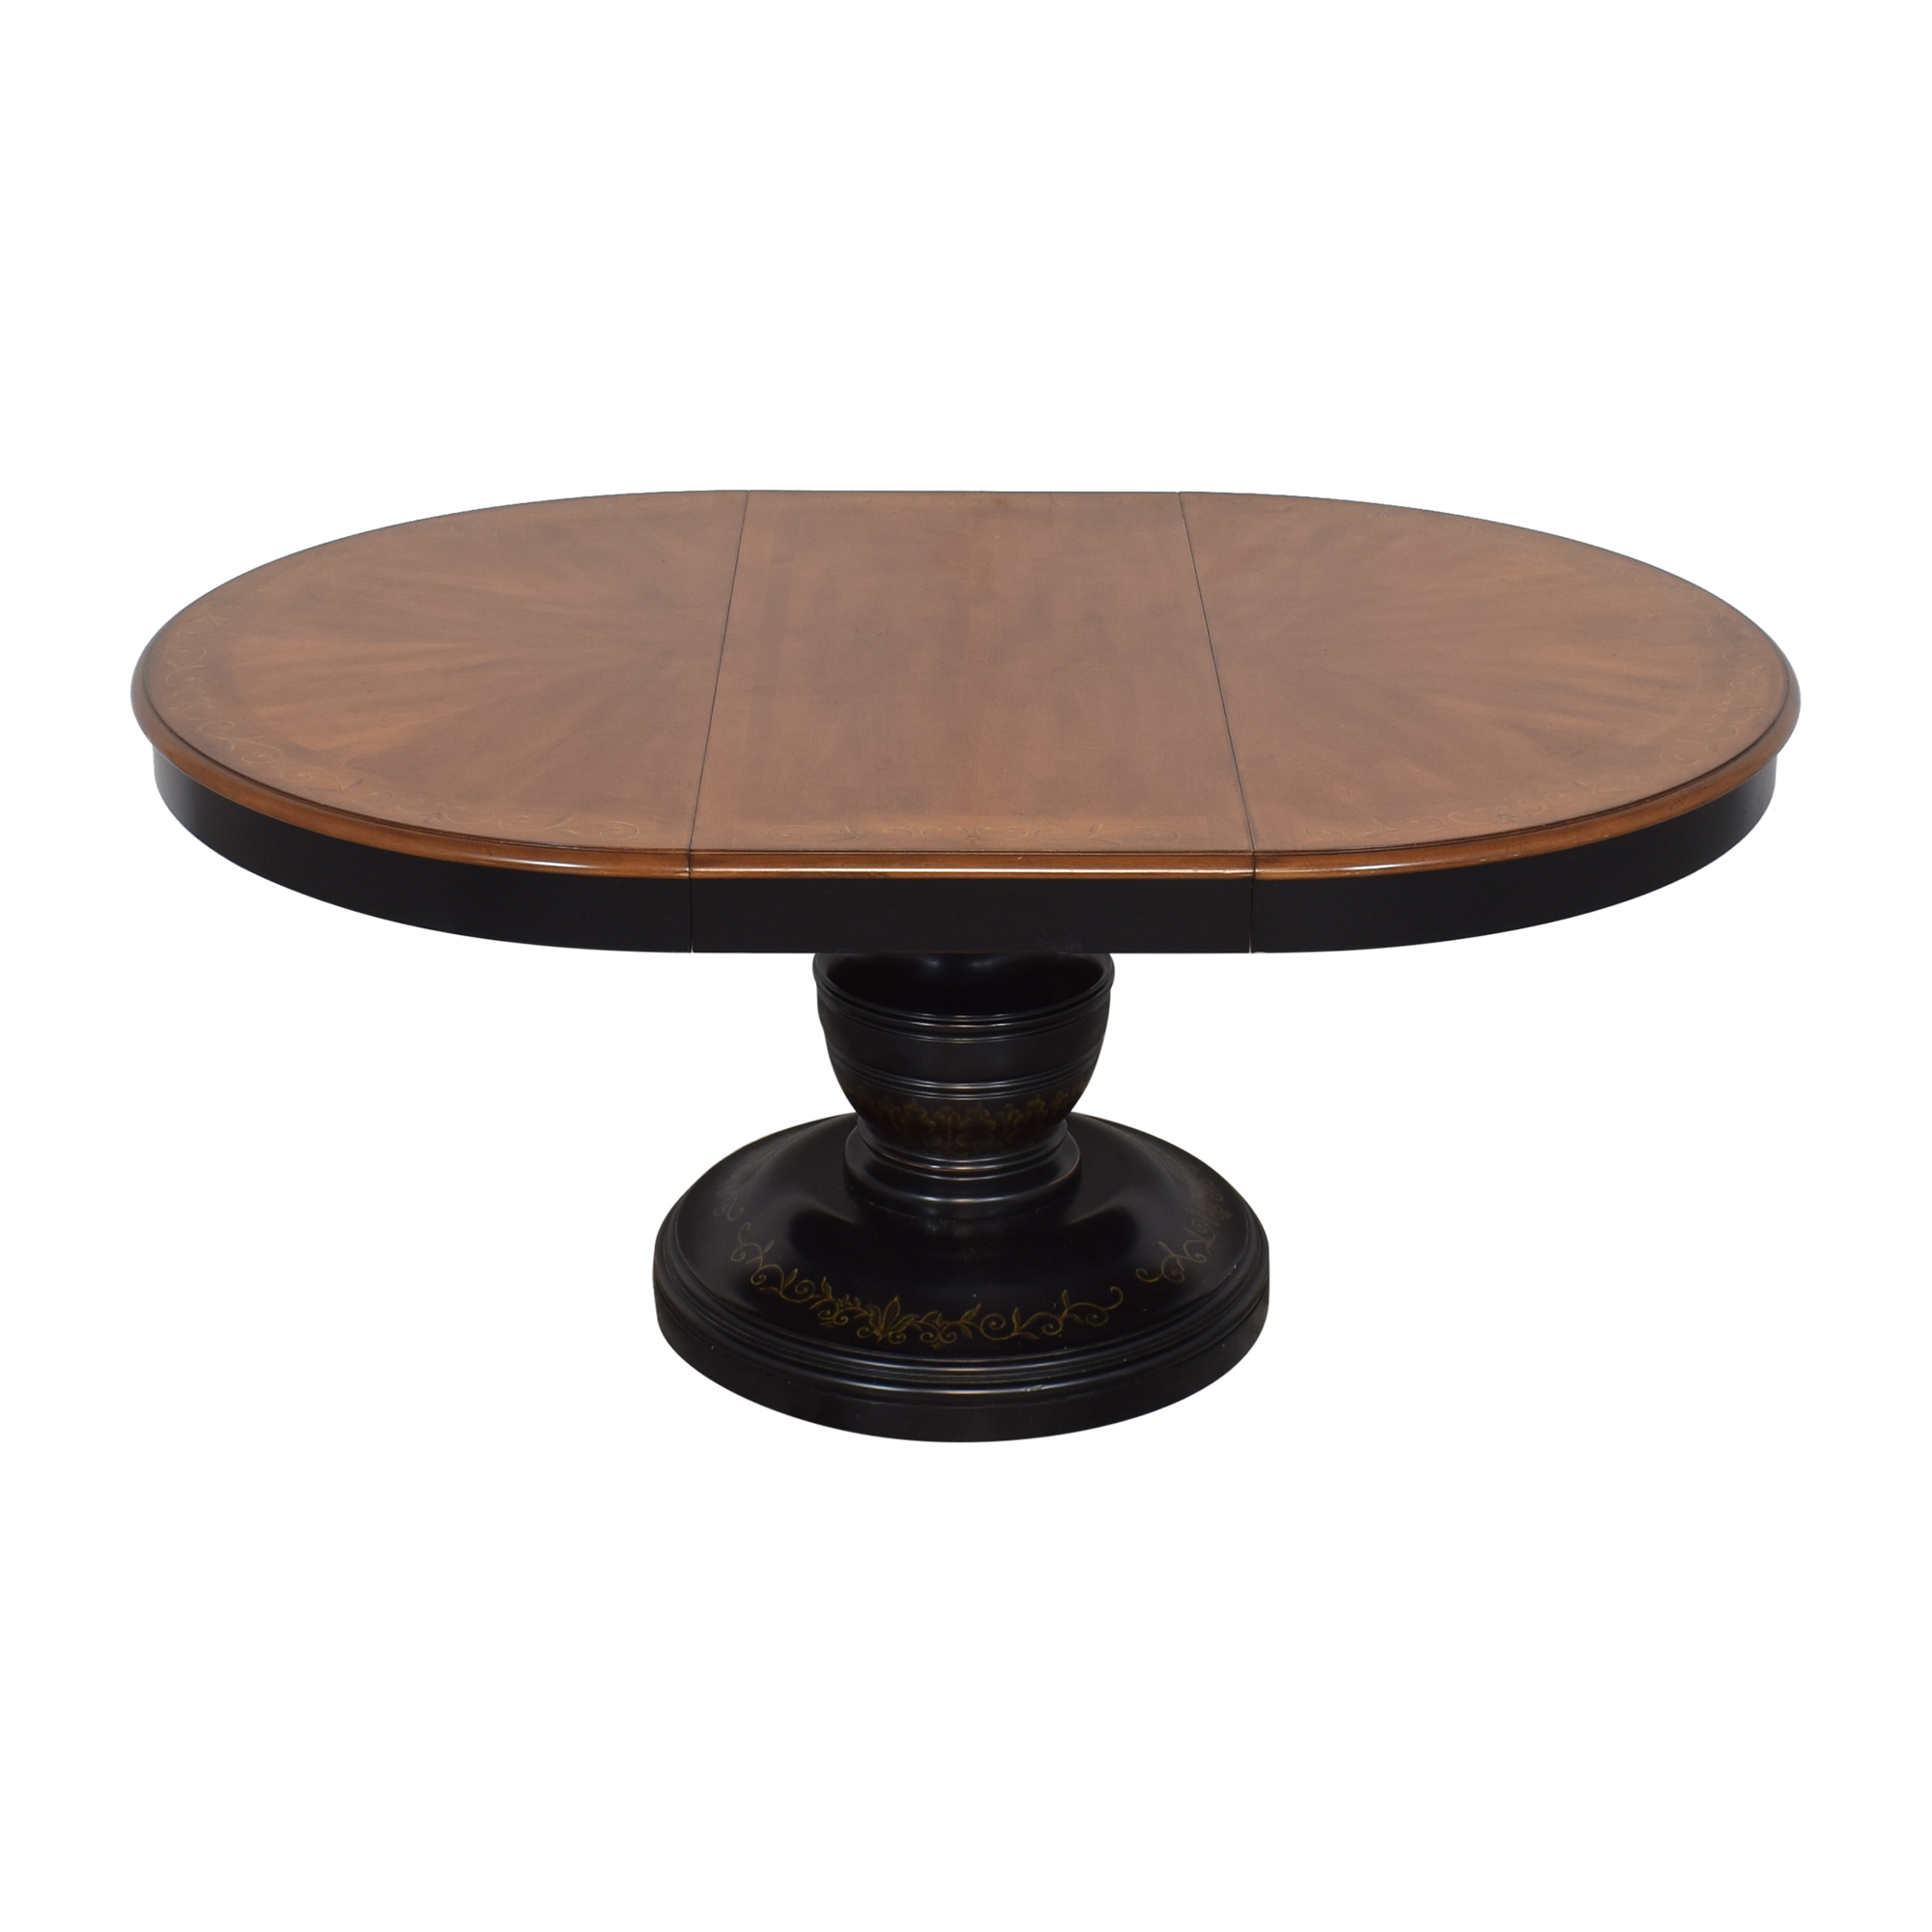 A.R.T. Furniture A.R.T. Furniture Extendable Oval Dining Table for sale